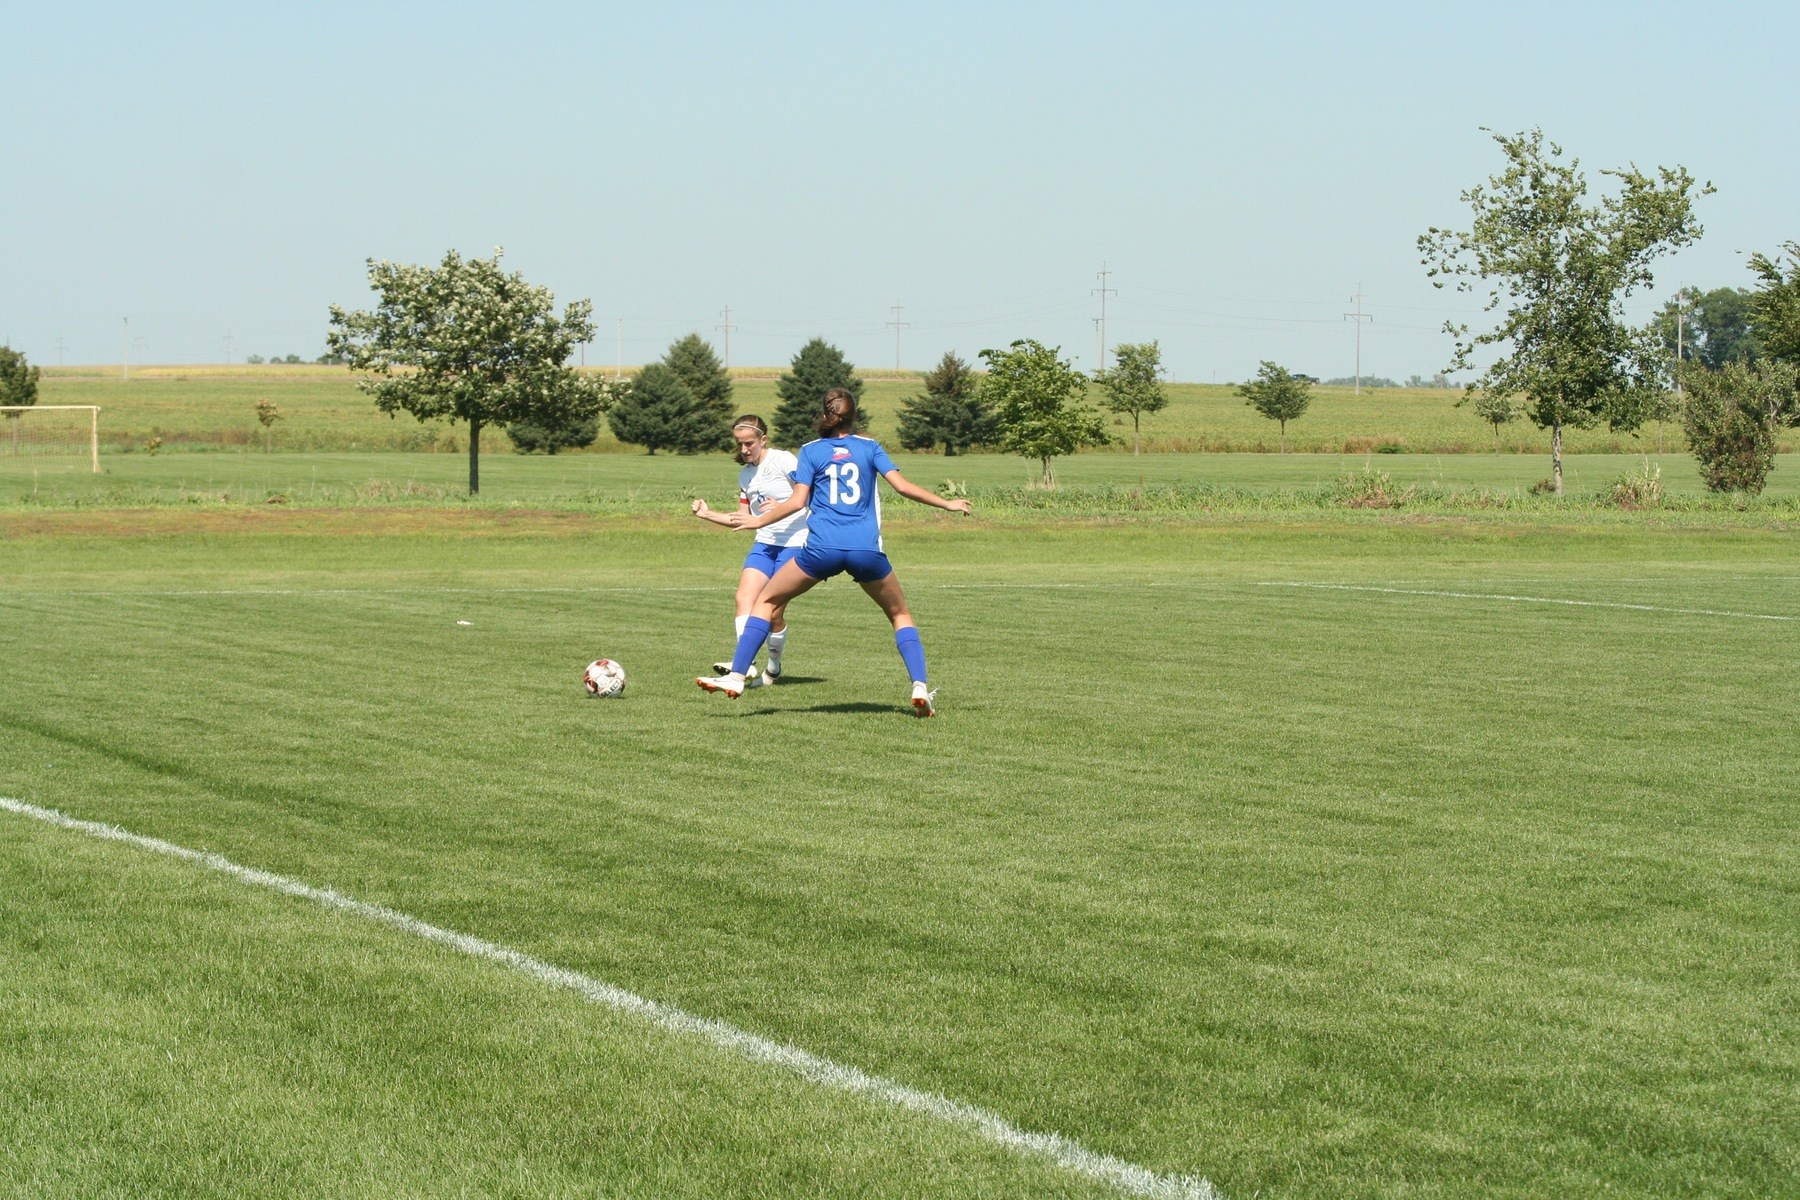 IOWA LAKES WOMEN'S SOCCER TEAM TO COMPETE IN REGIONAL TOURNAMENT